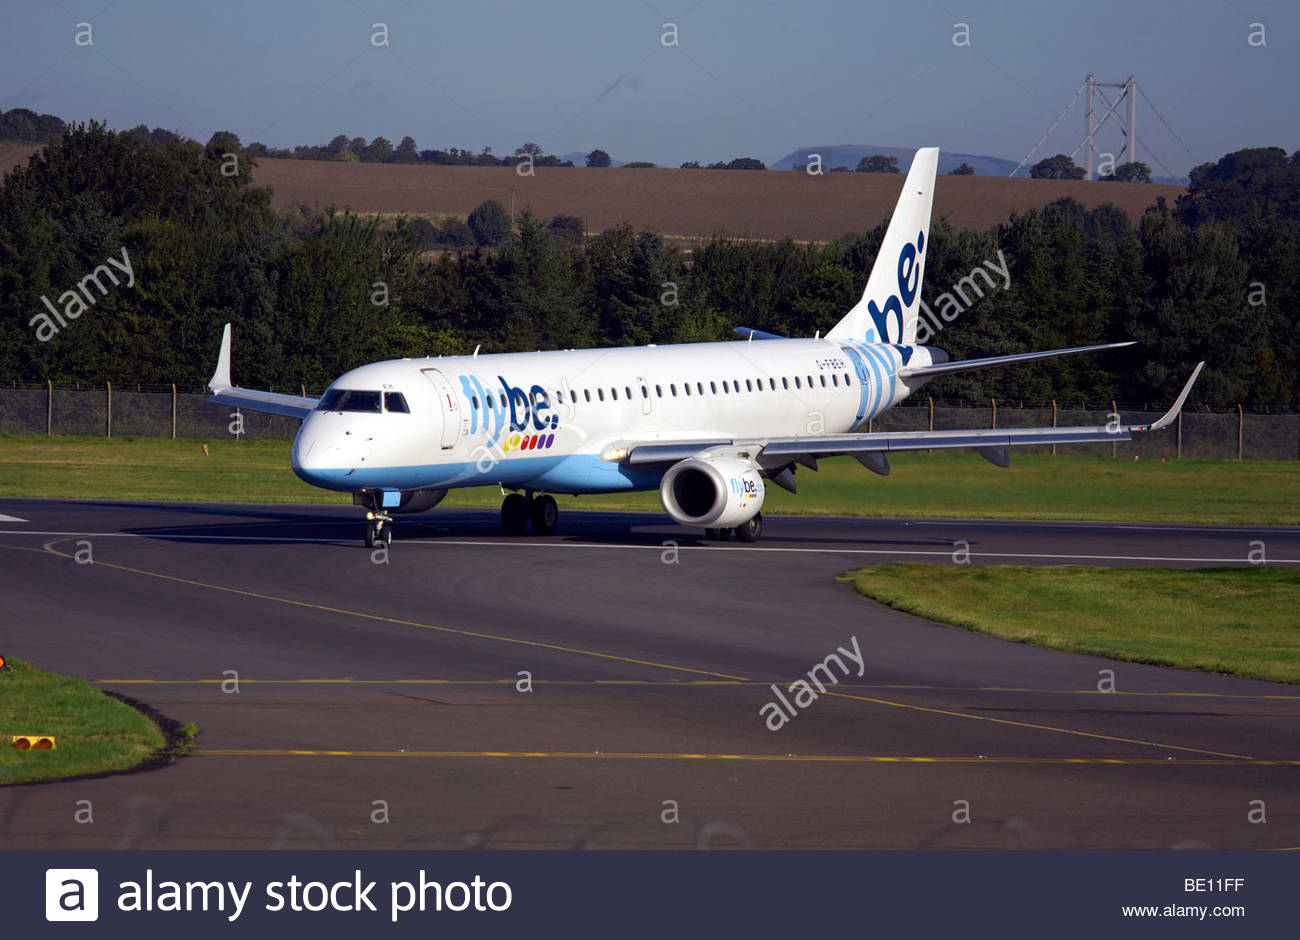 Flybe Embraer aeroplane taxiing at airport - Stock Image